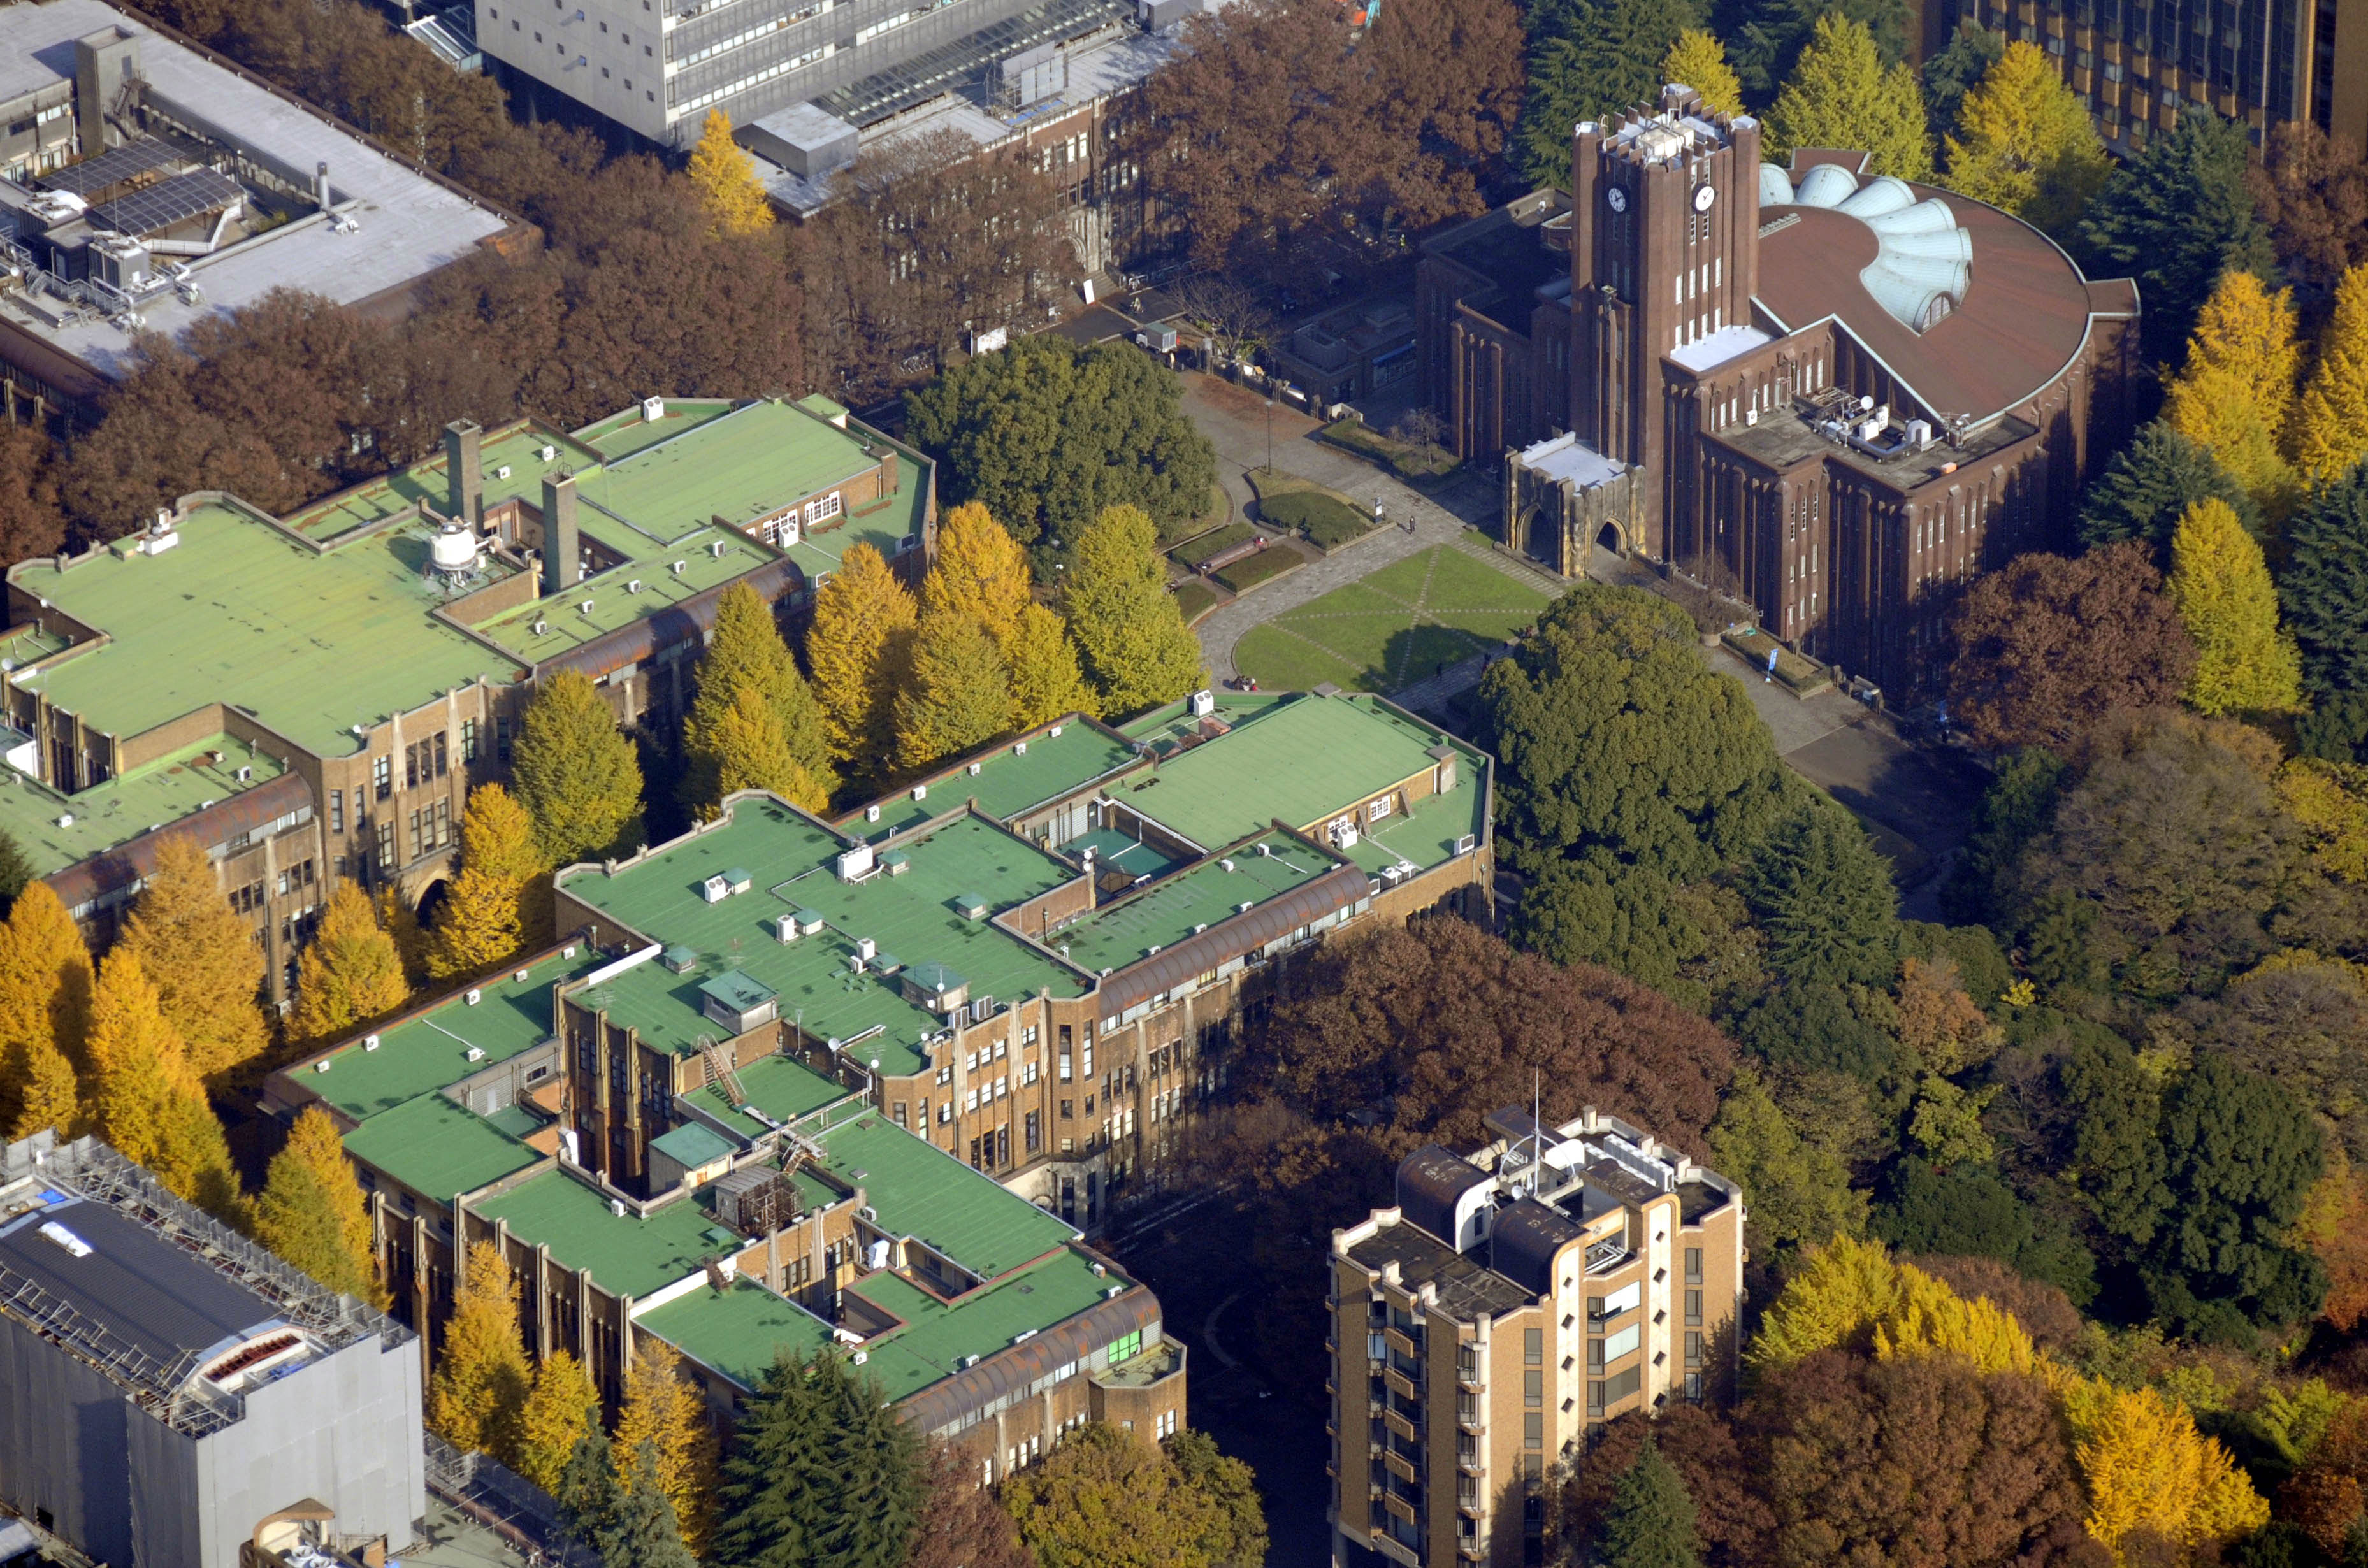 Undated file photo shows the buildings of the University of Tokyo in Tokyo's Bunkyo Ward. | KYODO